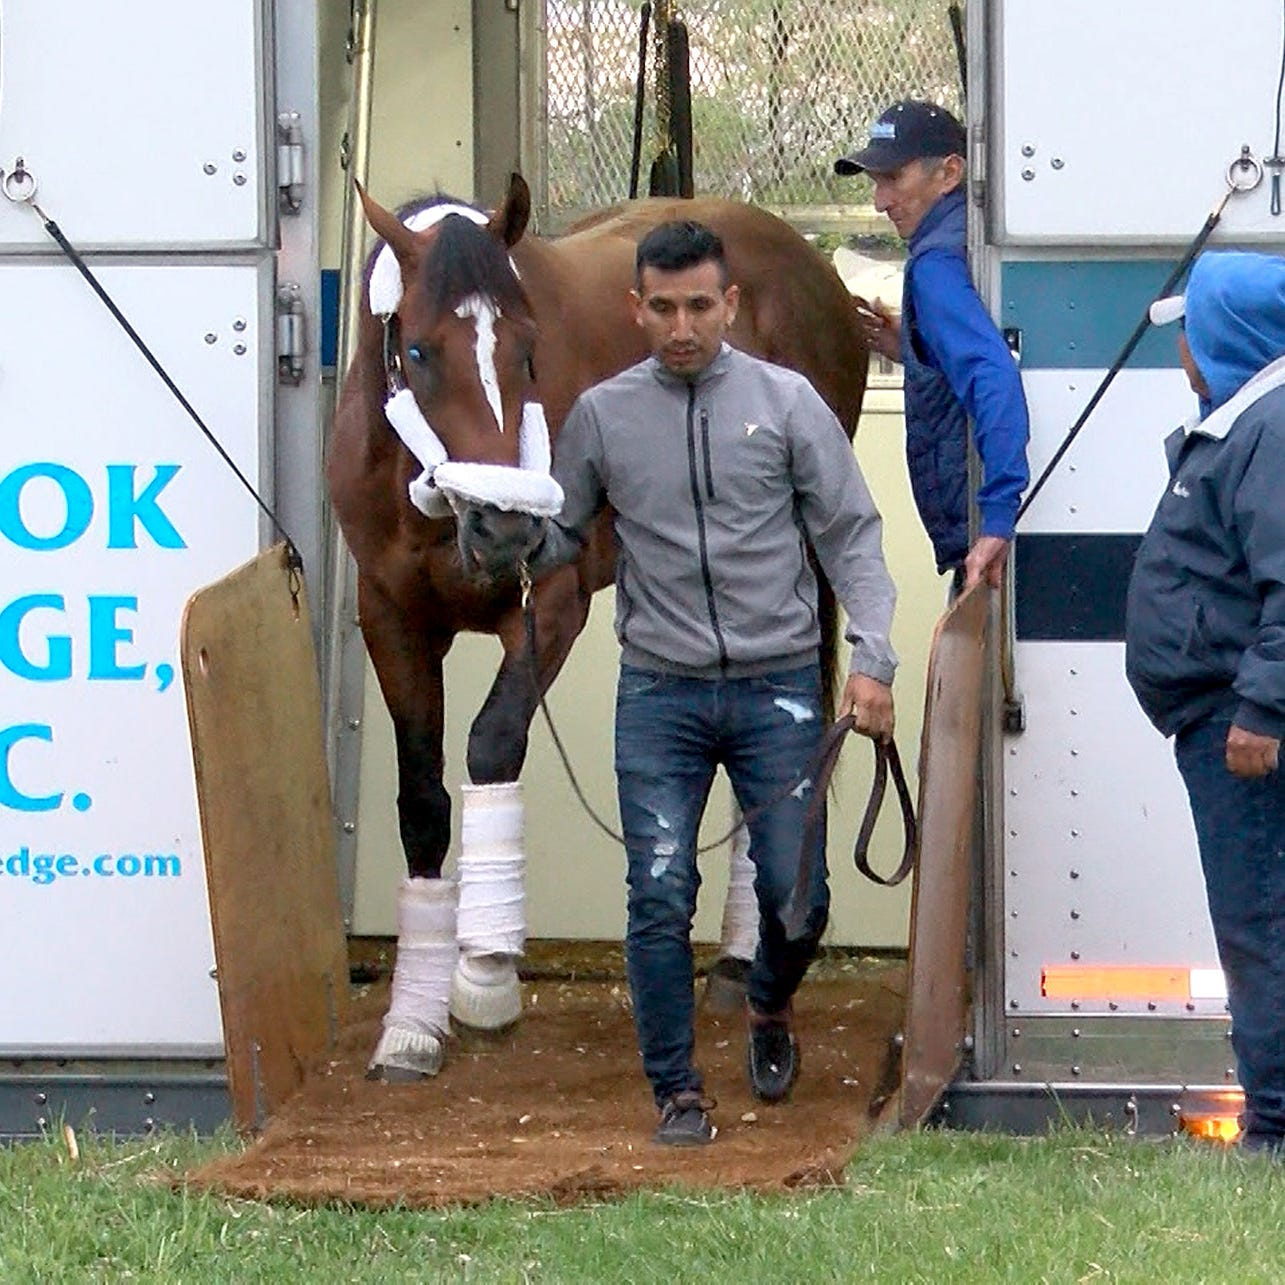 After Kentucky Derby DQ, Maximum Security arrives at Monmouth Park amid shifting landscape